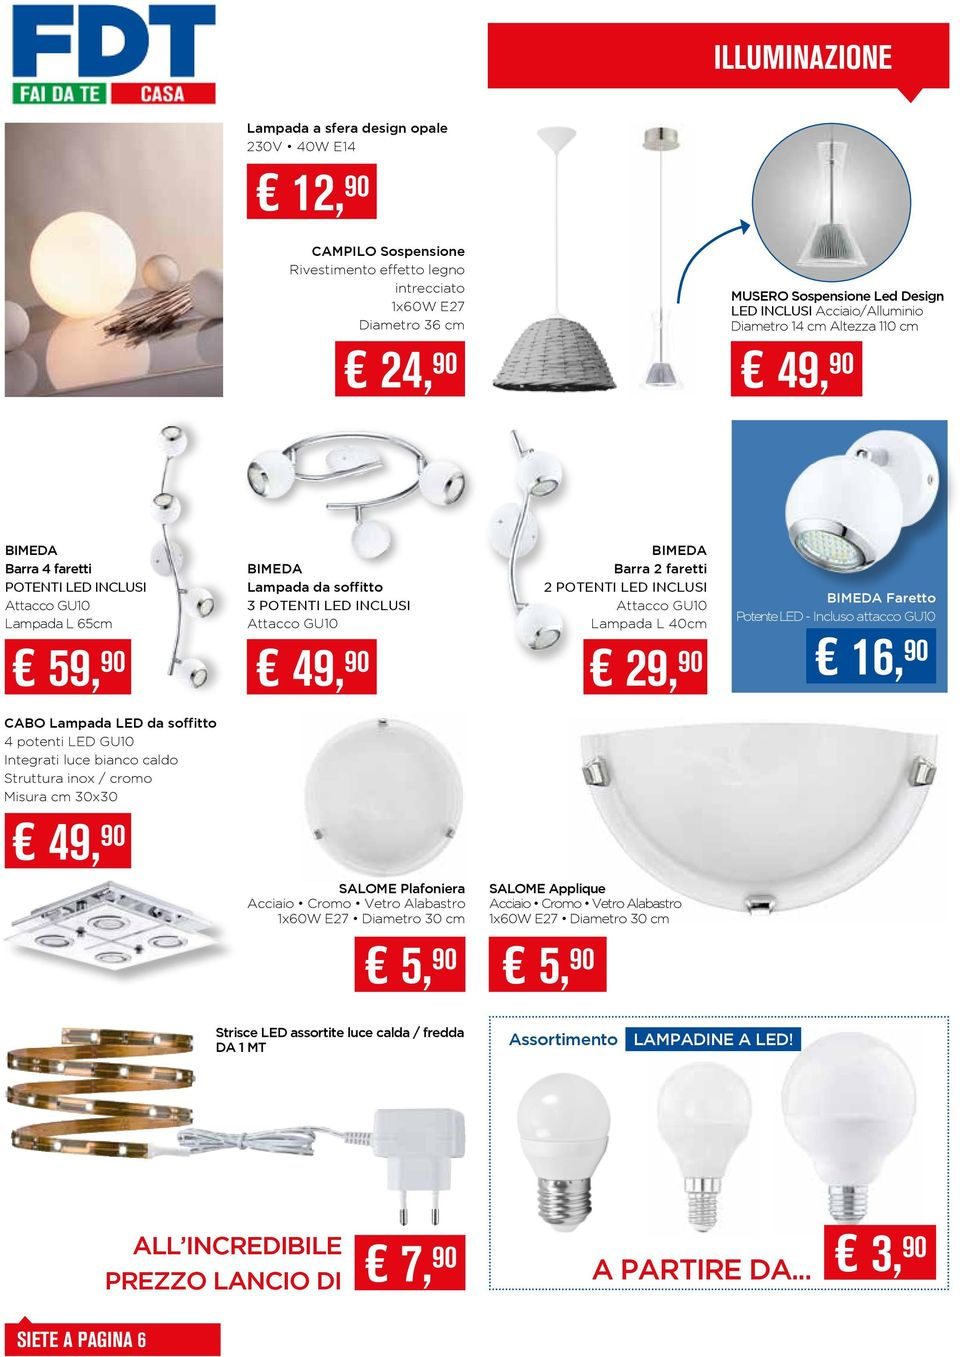 BIMEDA Barra 2 faretti 2 POTENTI LED INCLUSI Attacco GU10 Lampada L 40cm BIMEDA Faretto Potente LED - Incluso attacco GU10 59, 90 49, 90 29, 90 16, 90 CABO Lampada LED da soffitto 4 potenti LED GU10